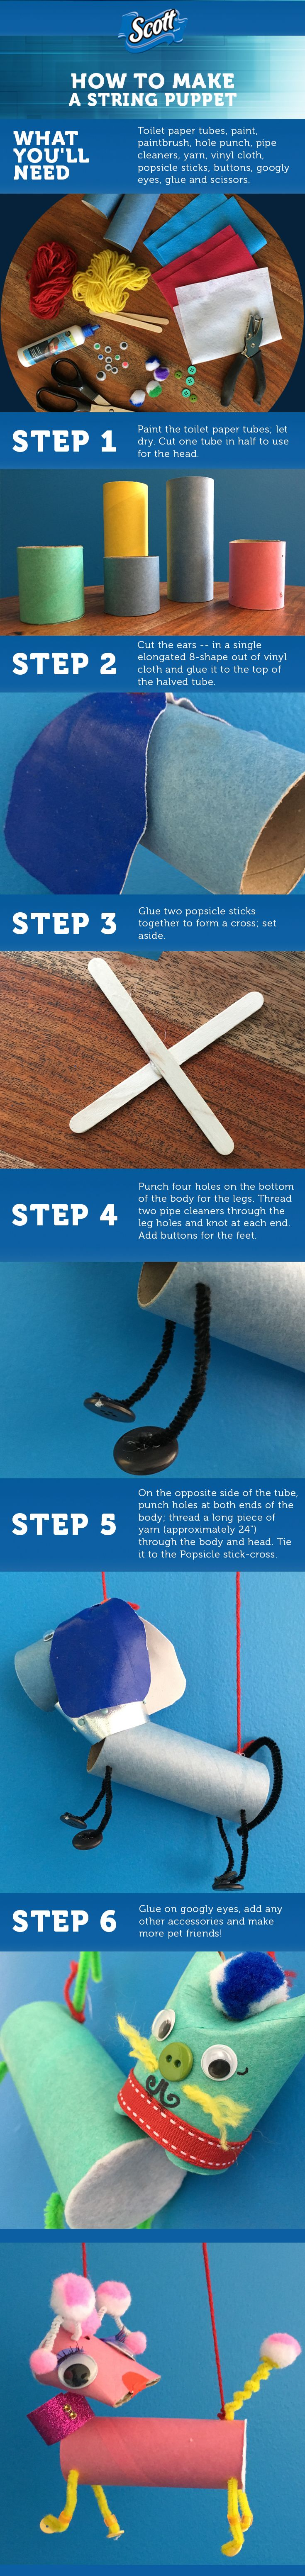 Summer has officially begun. So that means the little ones are home and looking for something to do. This fun puppet craft is sure to fill an afternoon with fun. Grab some TP tubes, construction paper, chopsticks, markers, glue, bottle caps, thread and a thumbtack to get started on this craft.